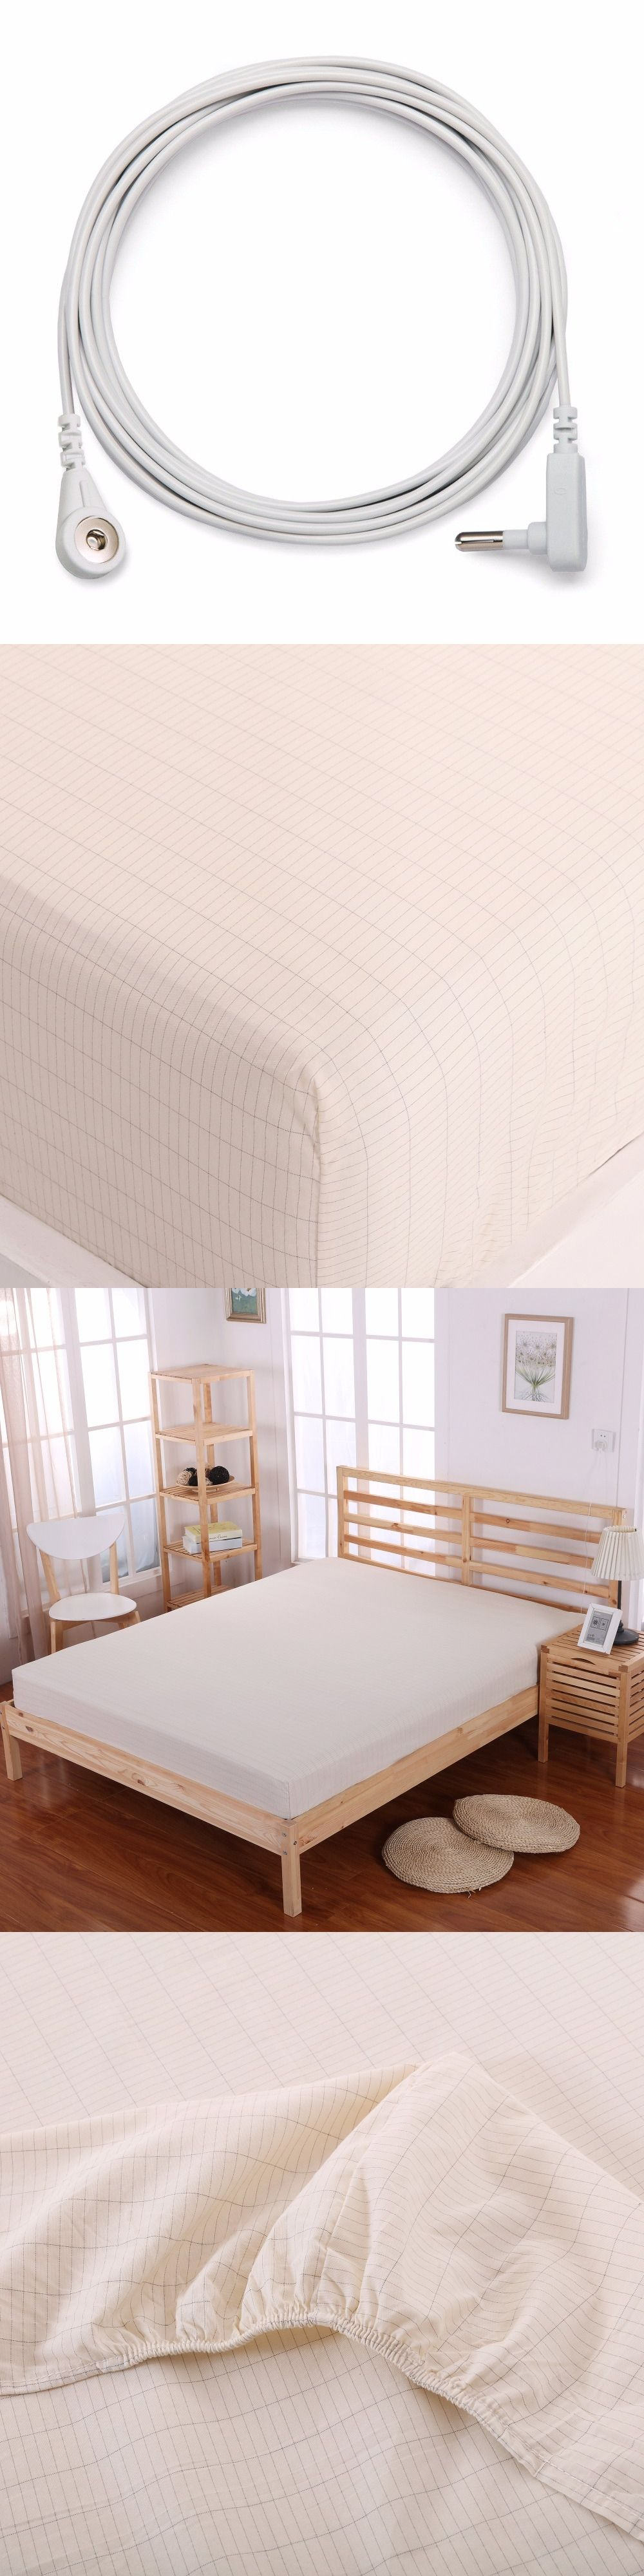 Fitted Sheet (137x 203cm) Cotton Sheet Conductive Fabric Grounded Kits Anti  Static Antibacterial Sheet